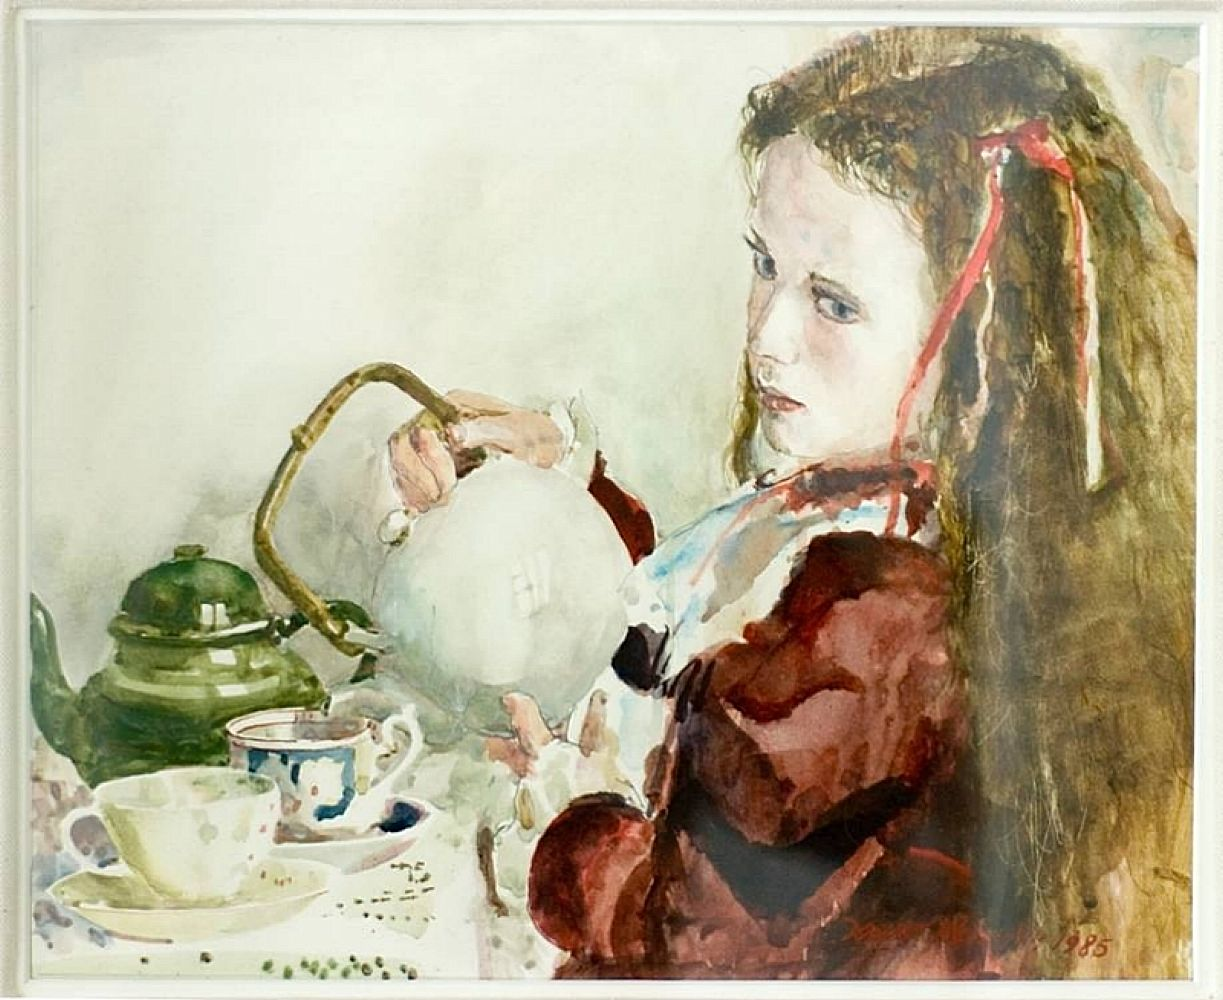 Emma and White Teapot | David Remfry